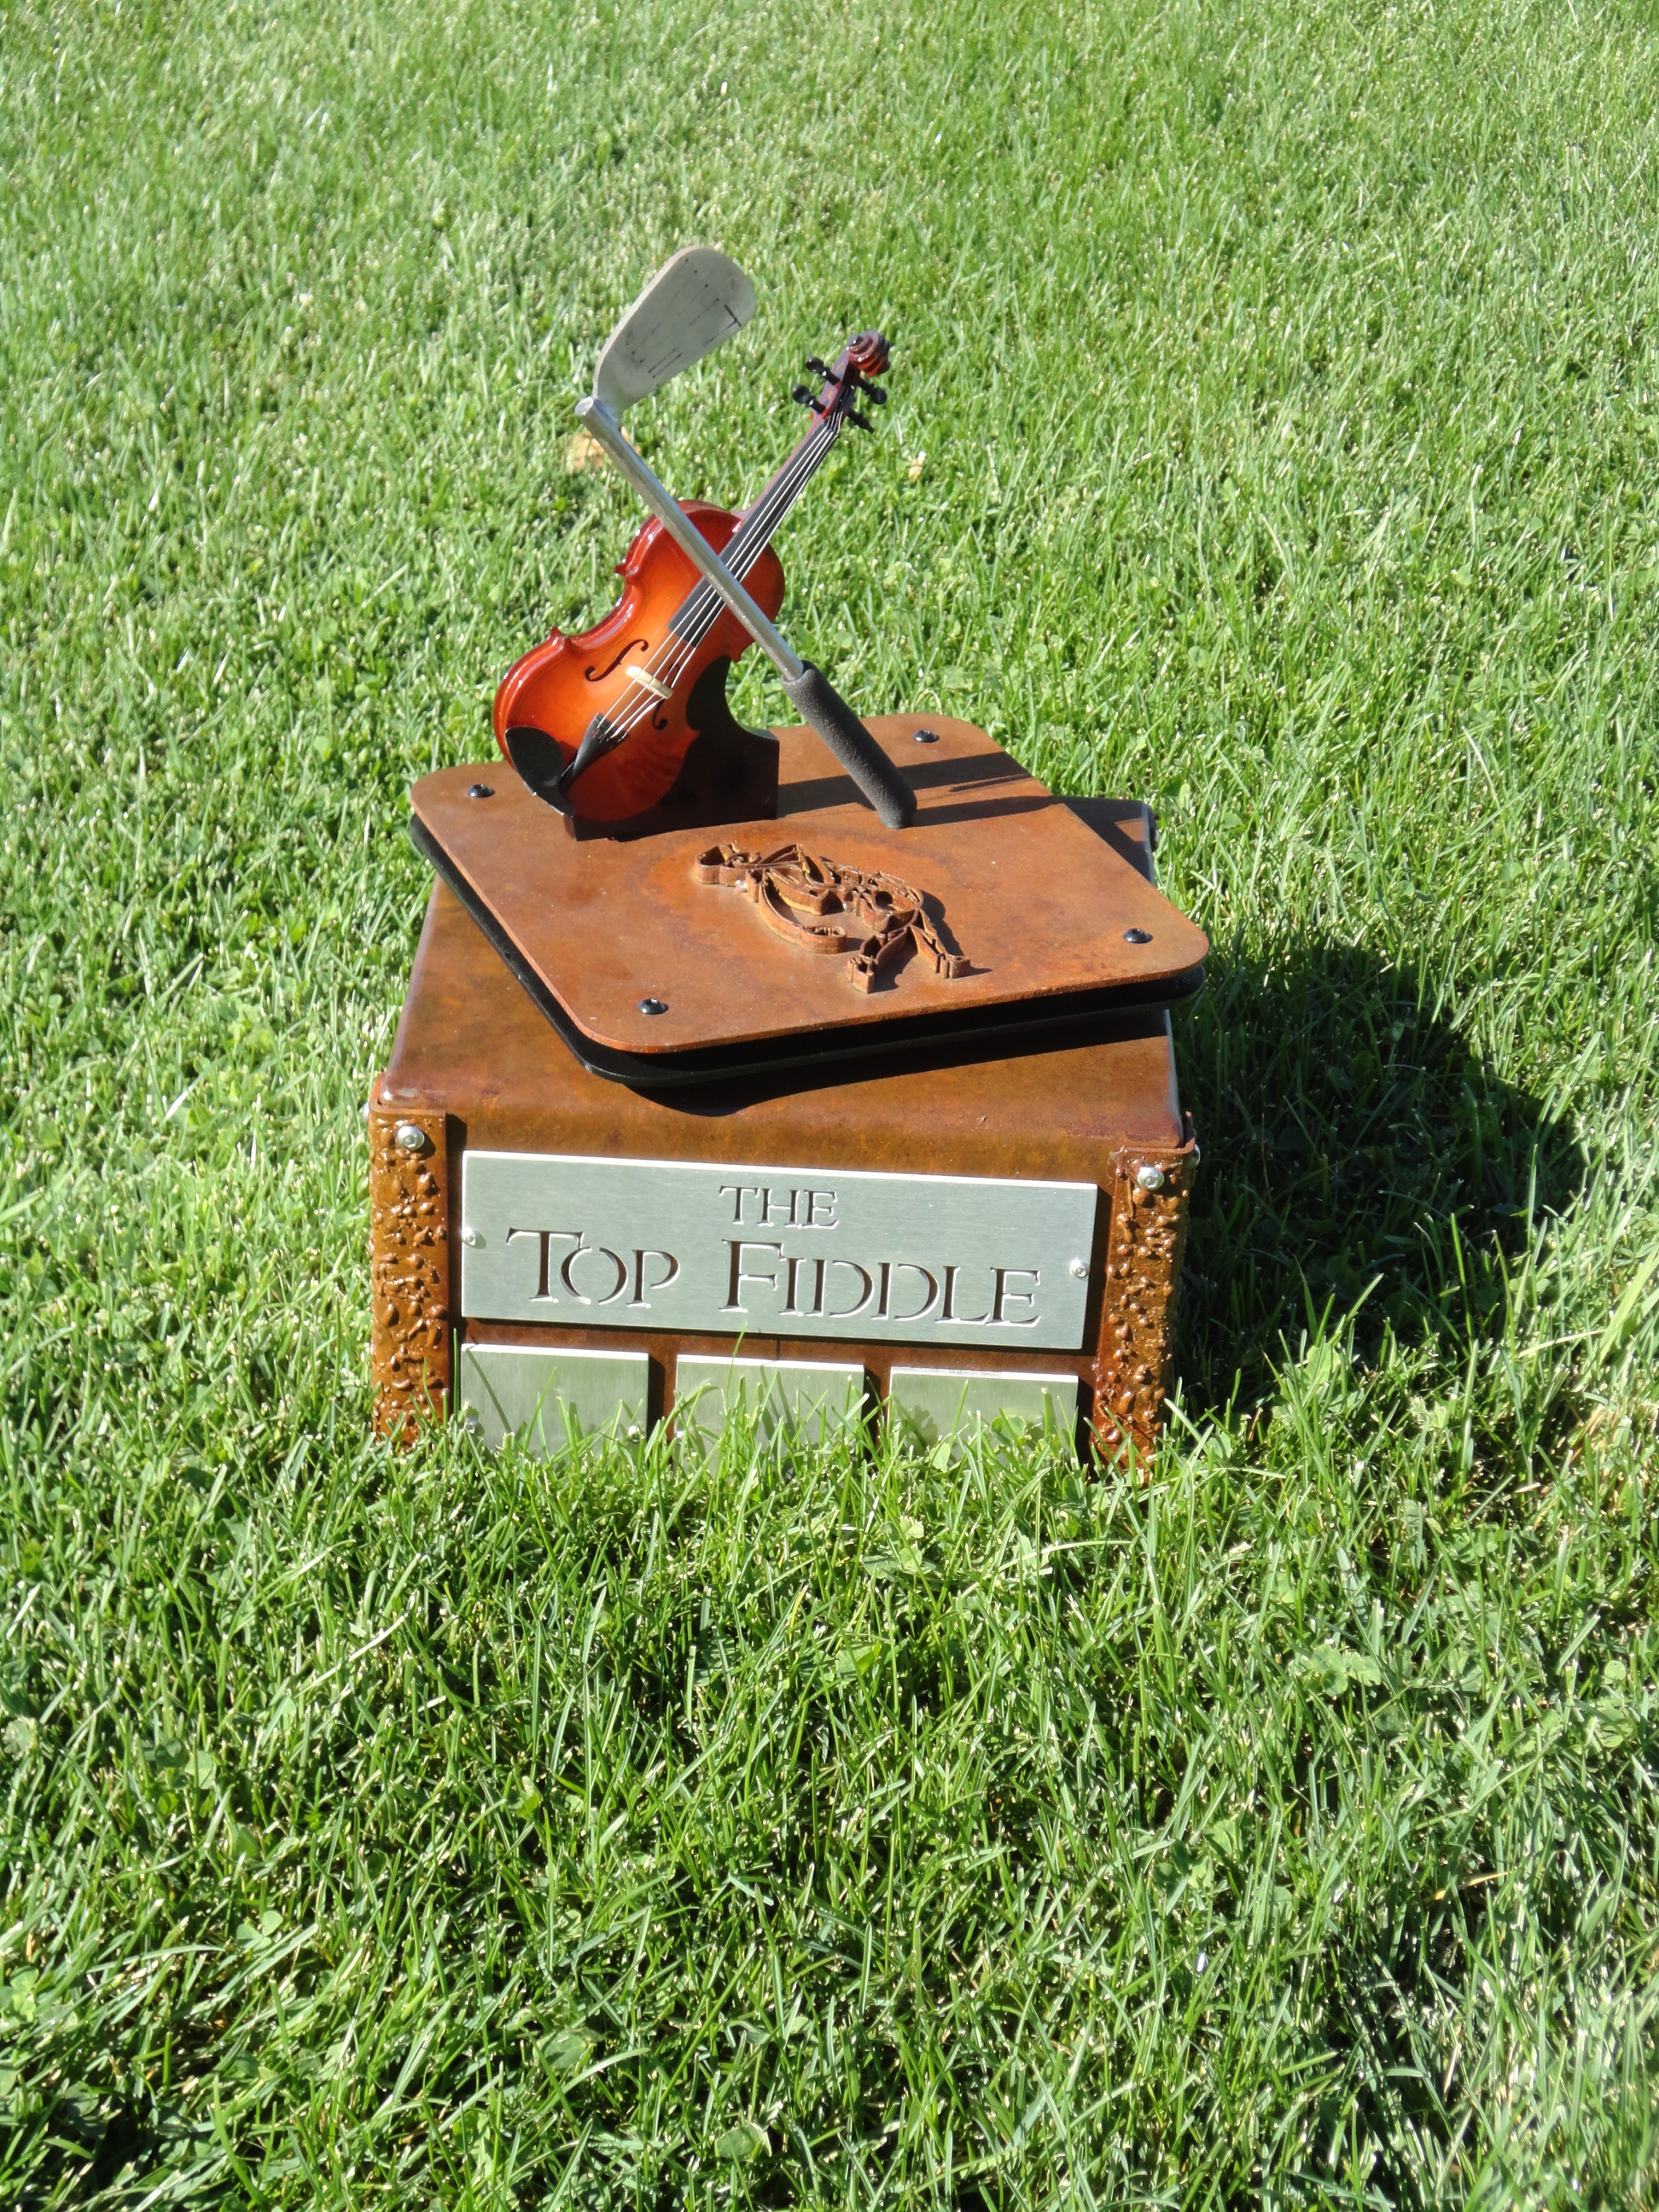 custom-perpetual-trophy-fiddlers-elbow